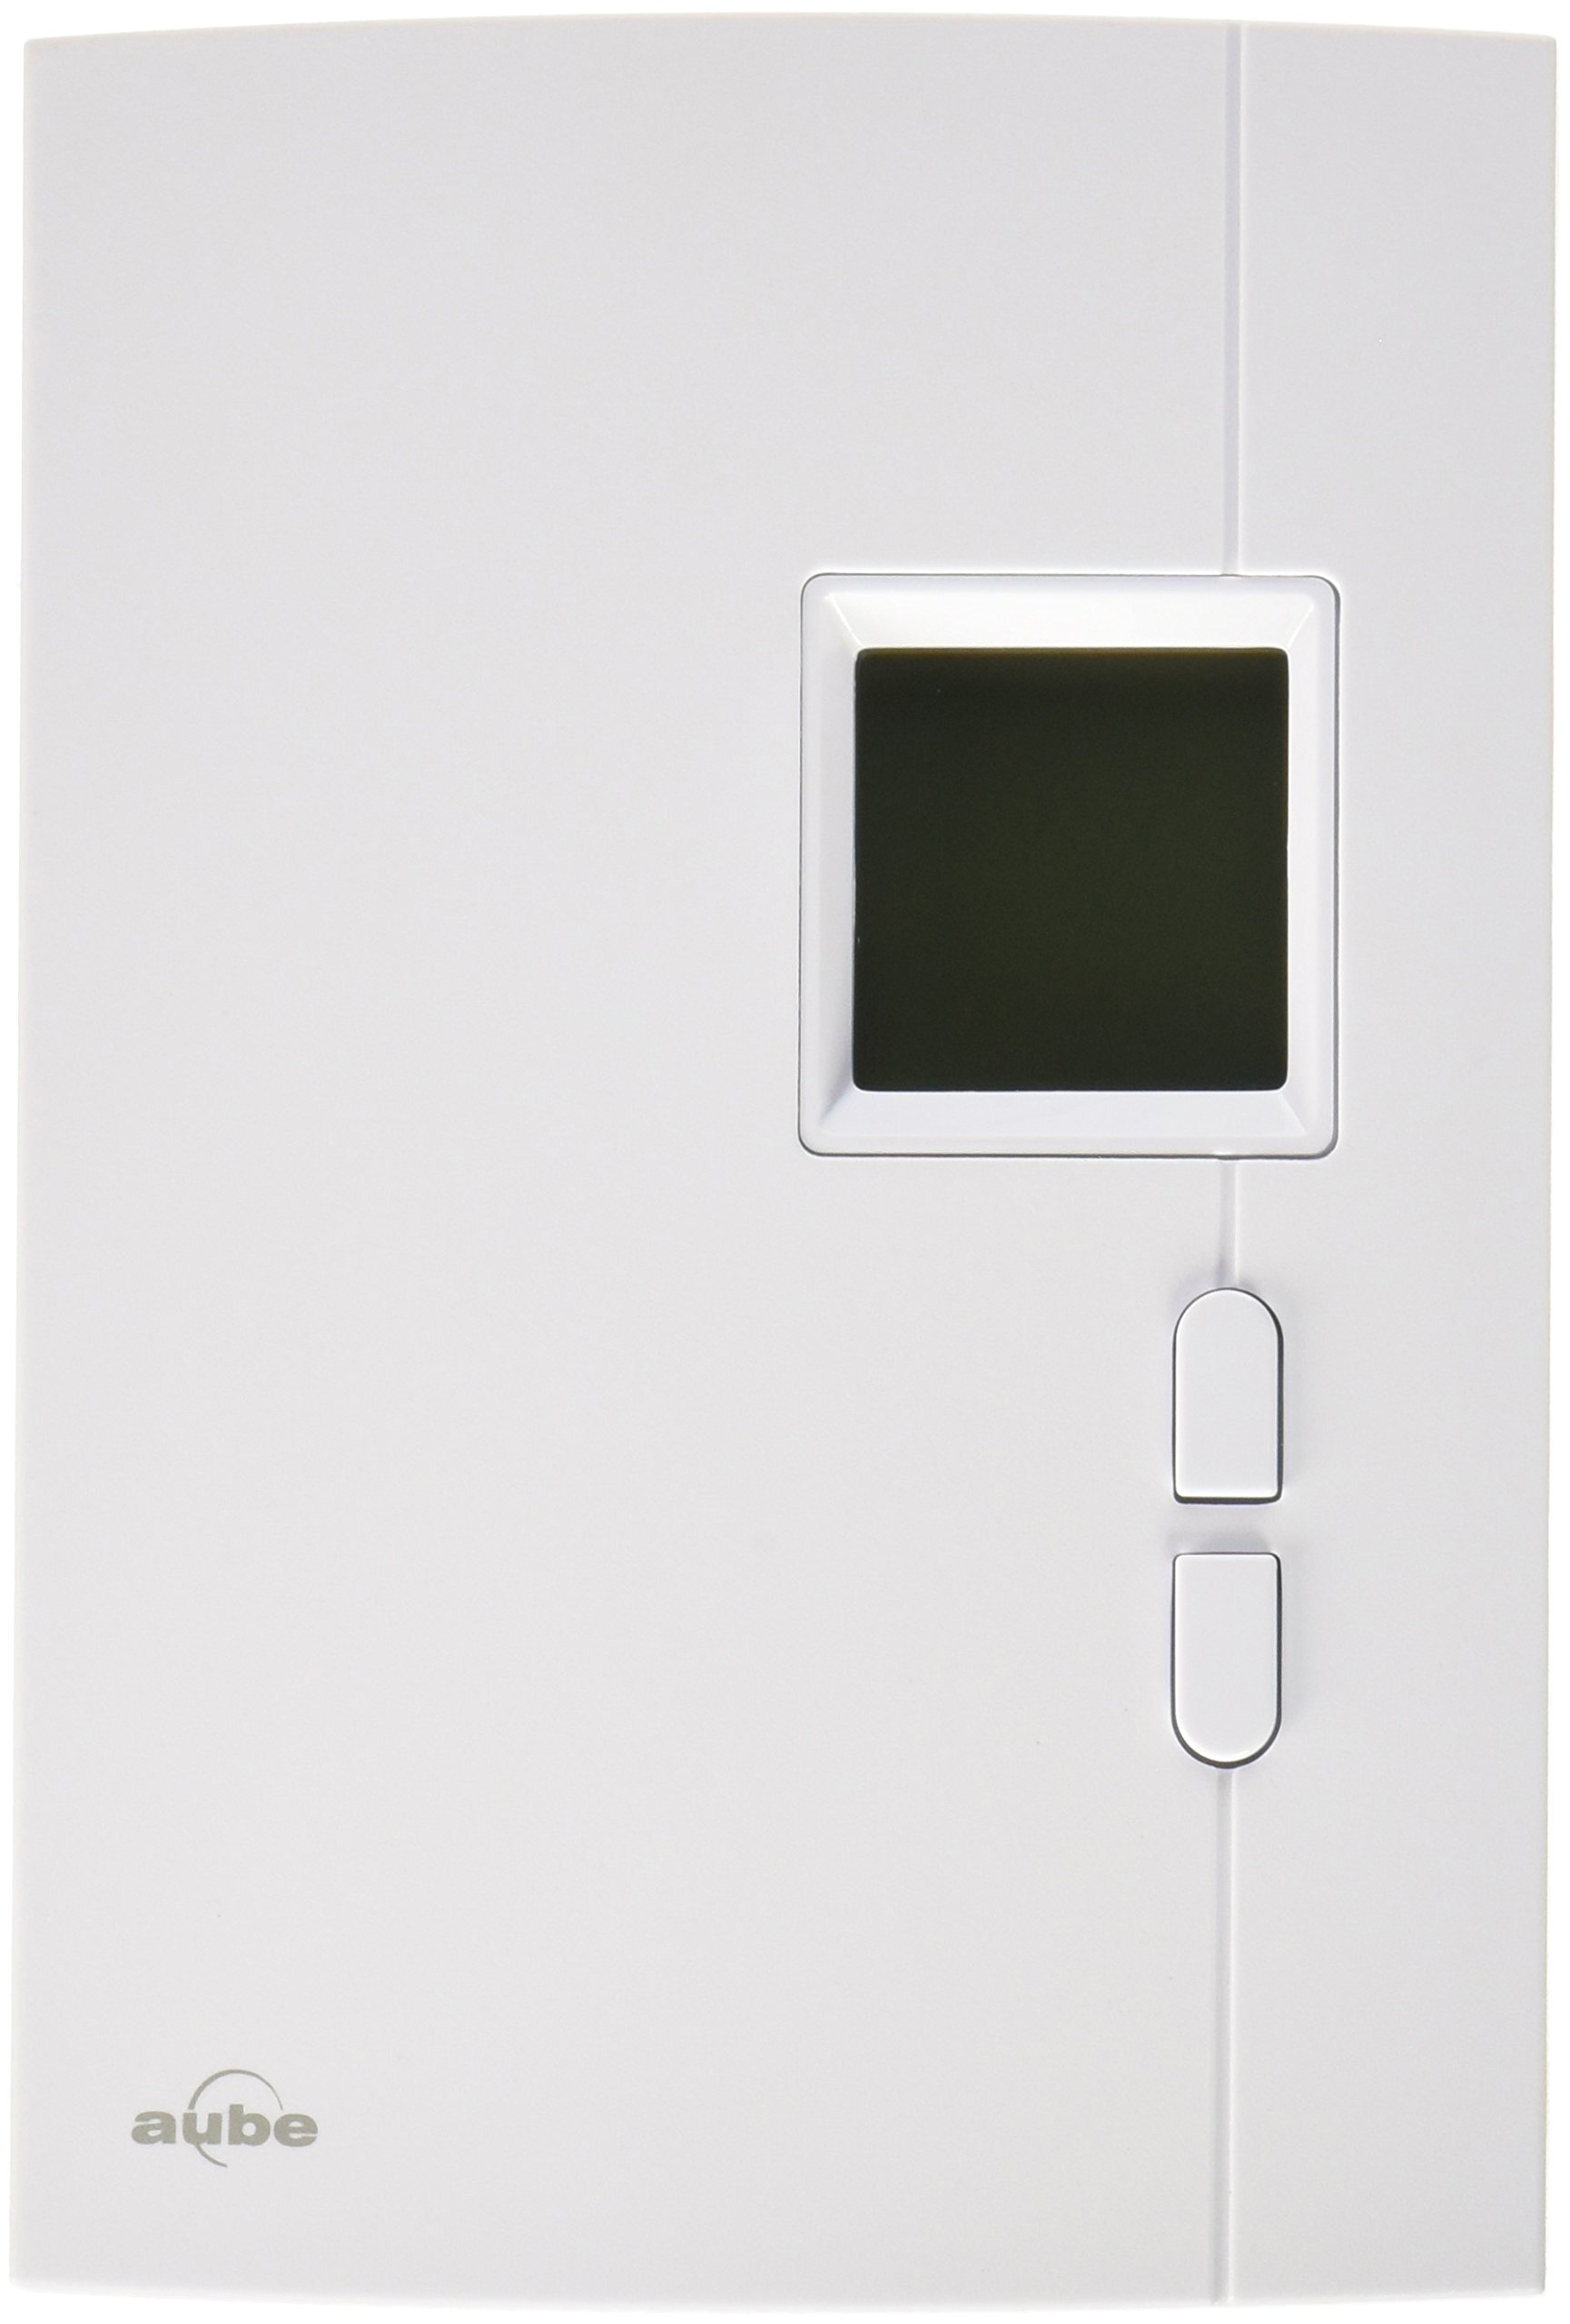 Aube Technologies TH401 Compact Non-Programmable Thermostat product image